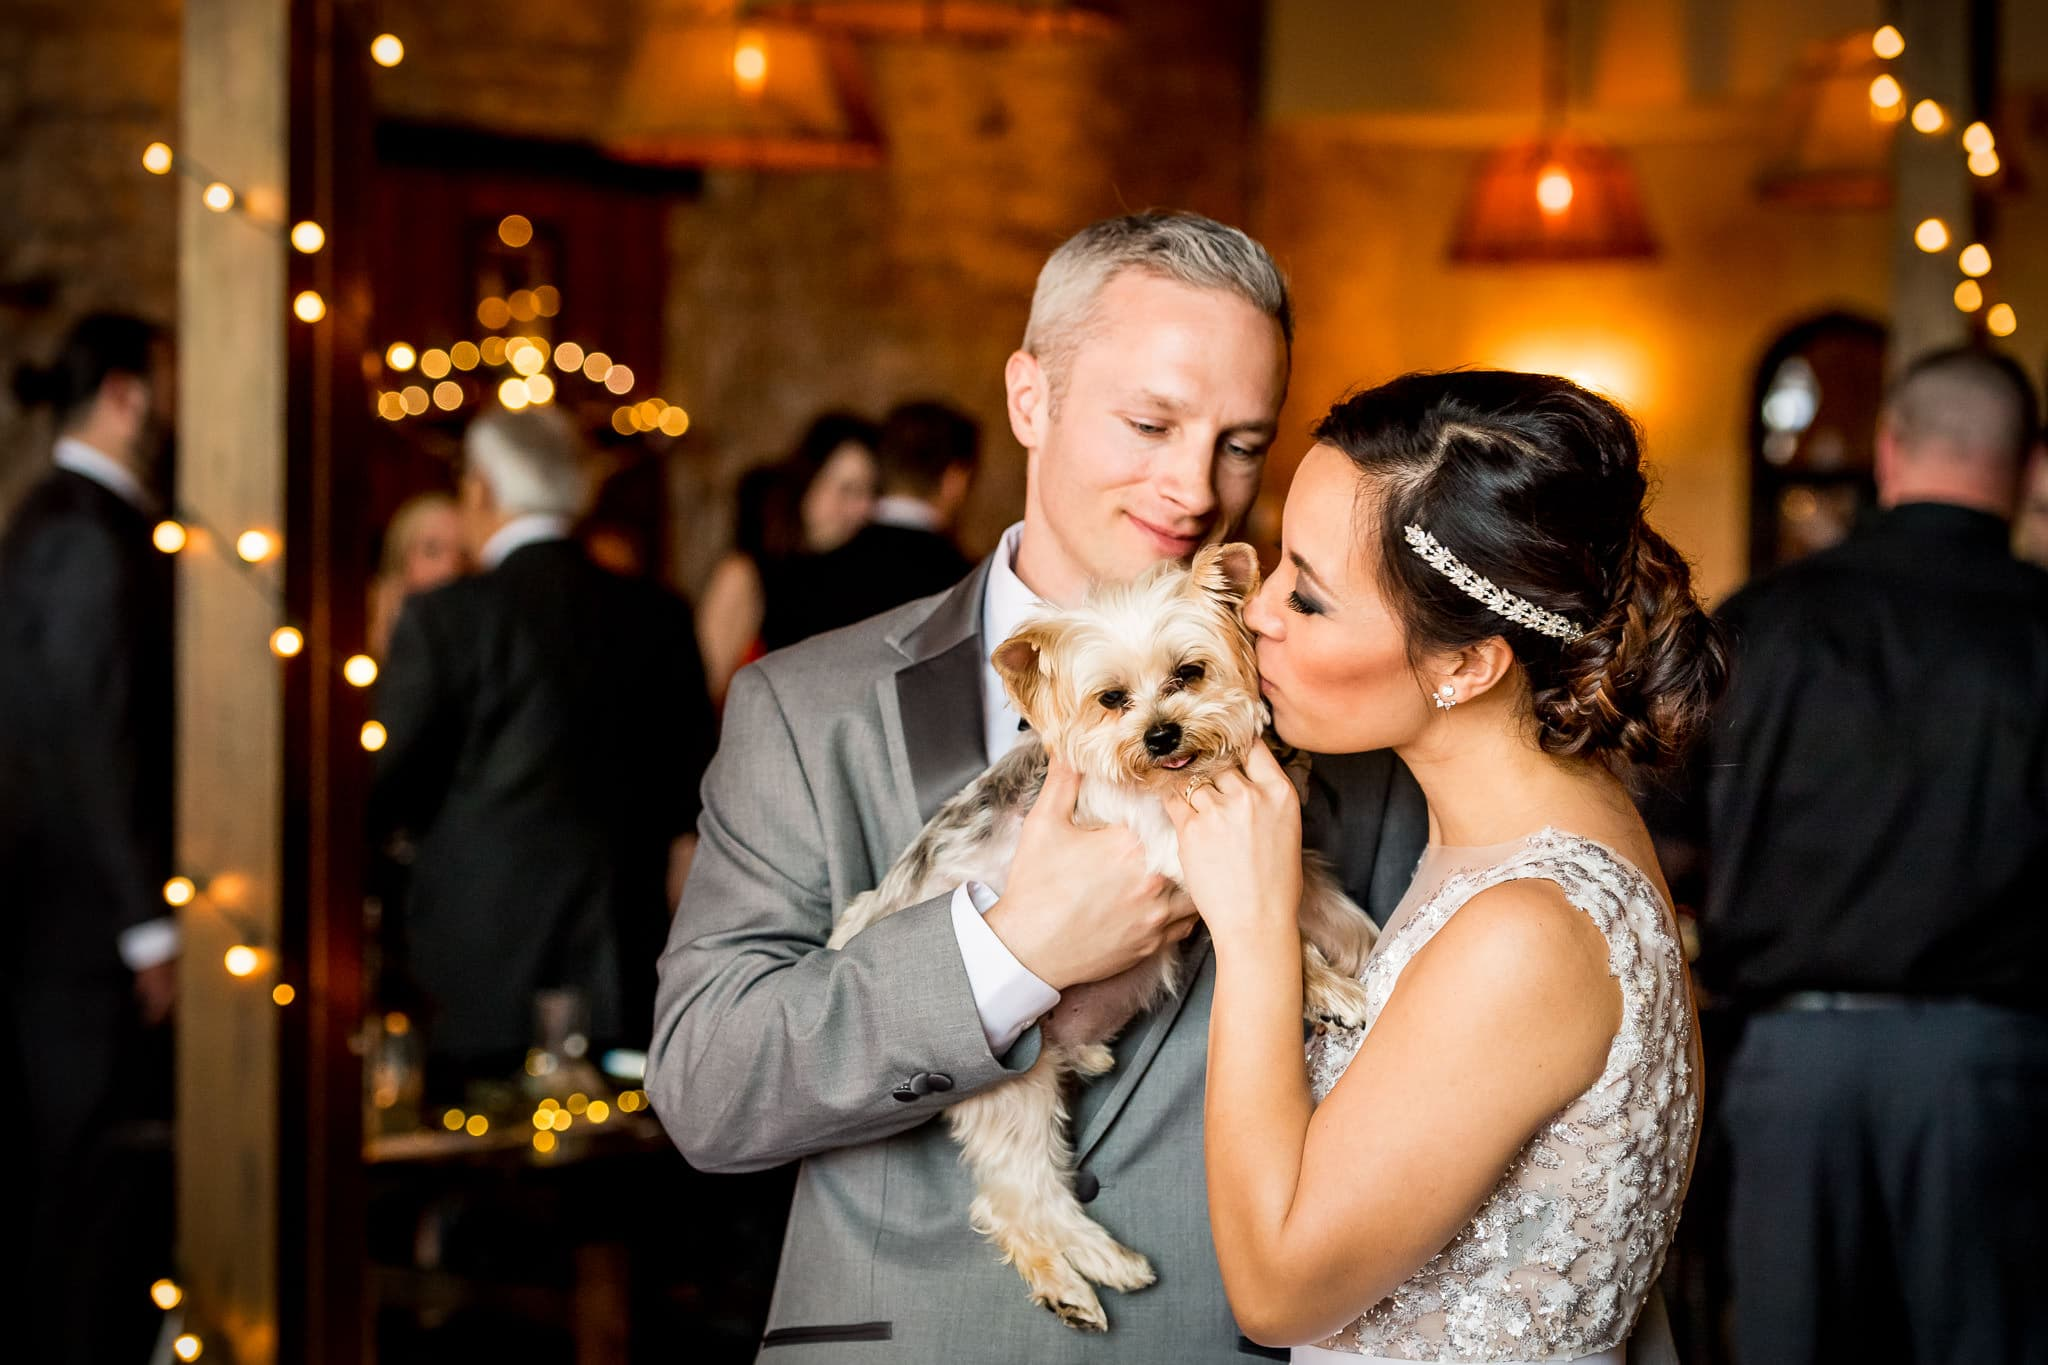 Bride and Groom with their dog during the wedding reception at Aster Cafe 2